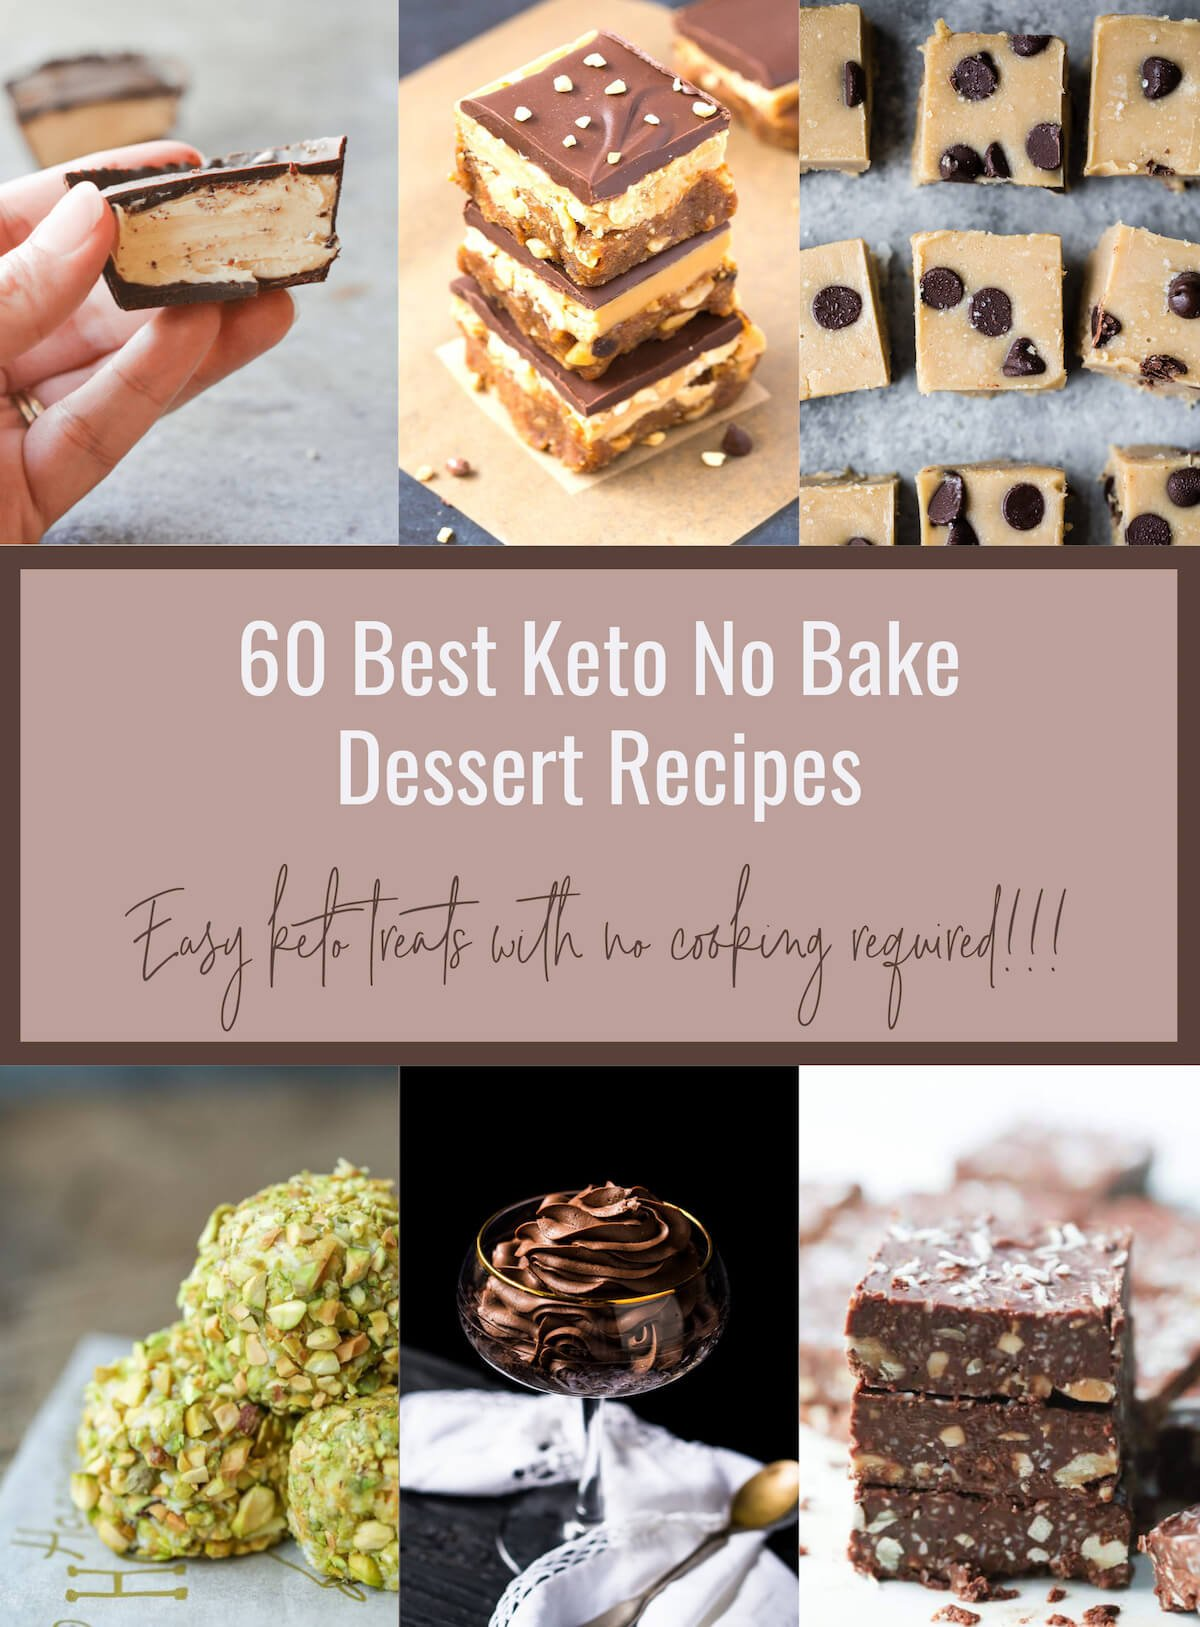 desert during keto diet